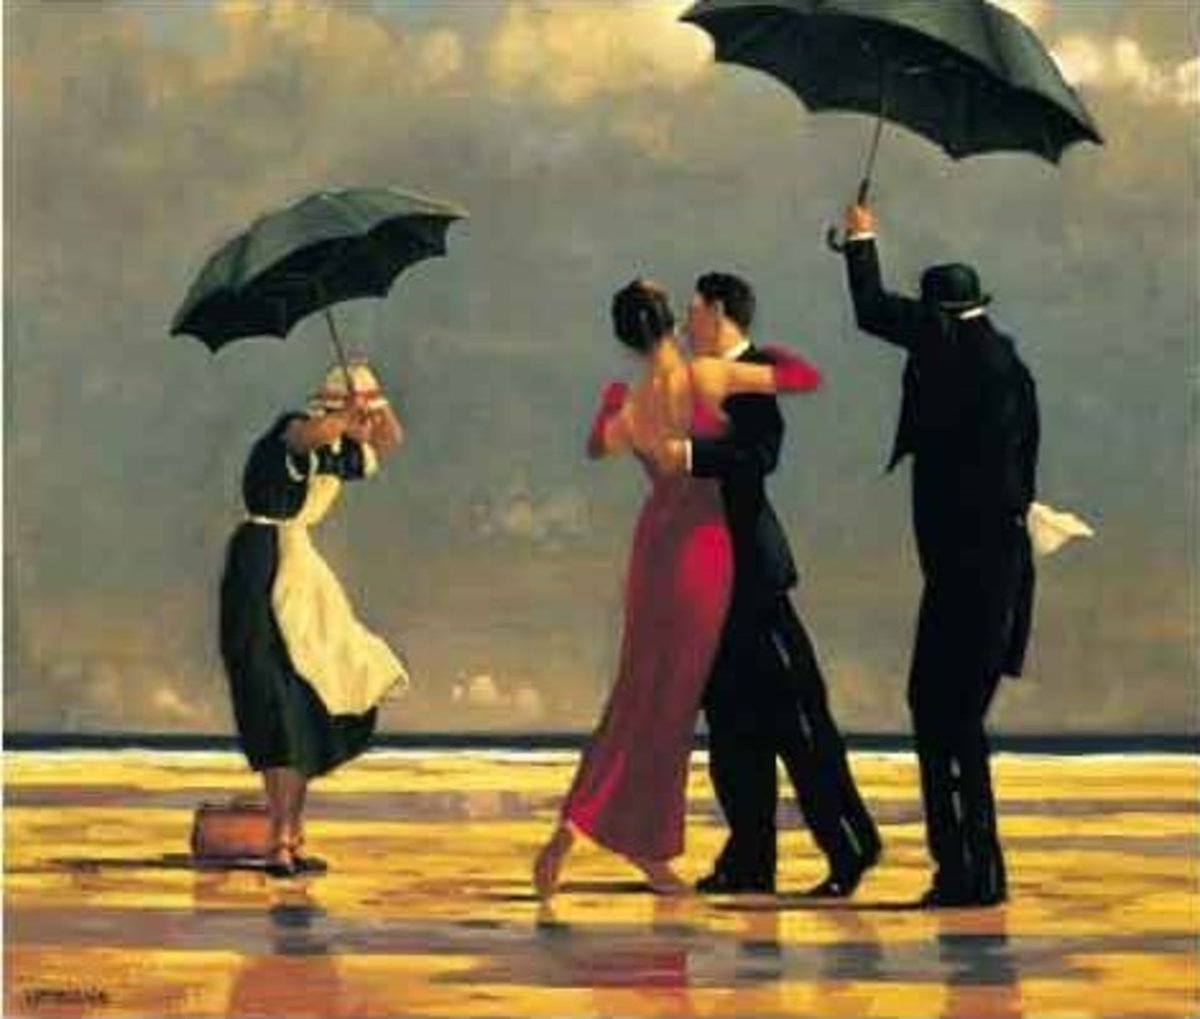 Jack Vettriano's The Singing Butler - Analysis